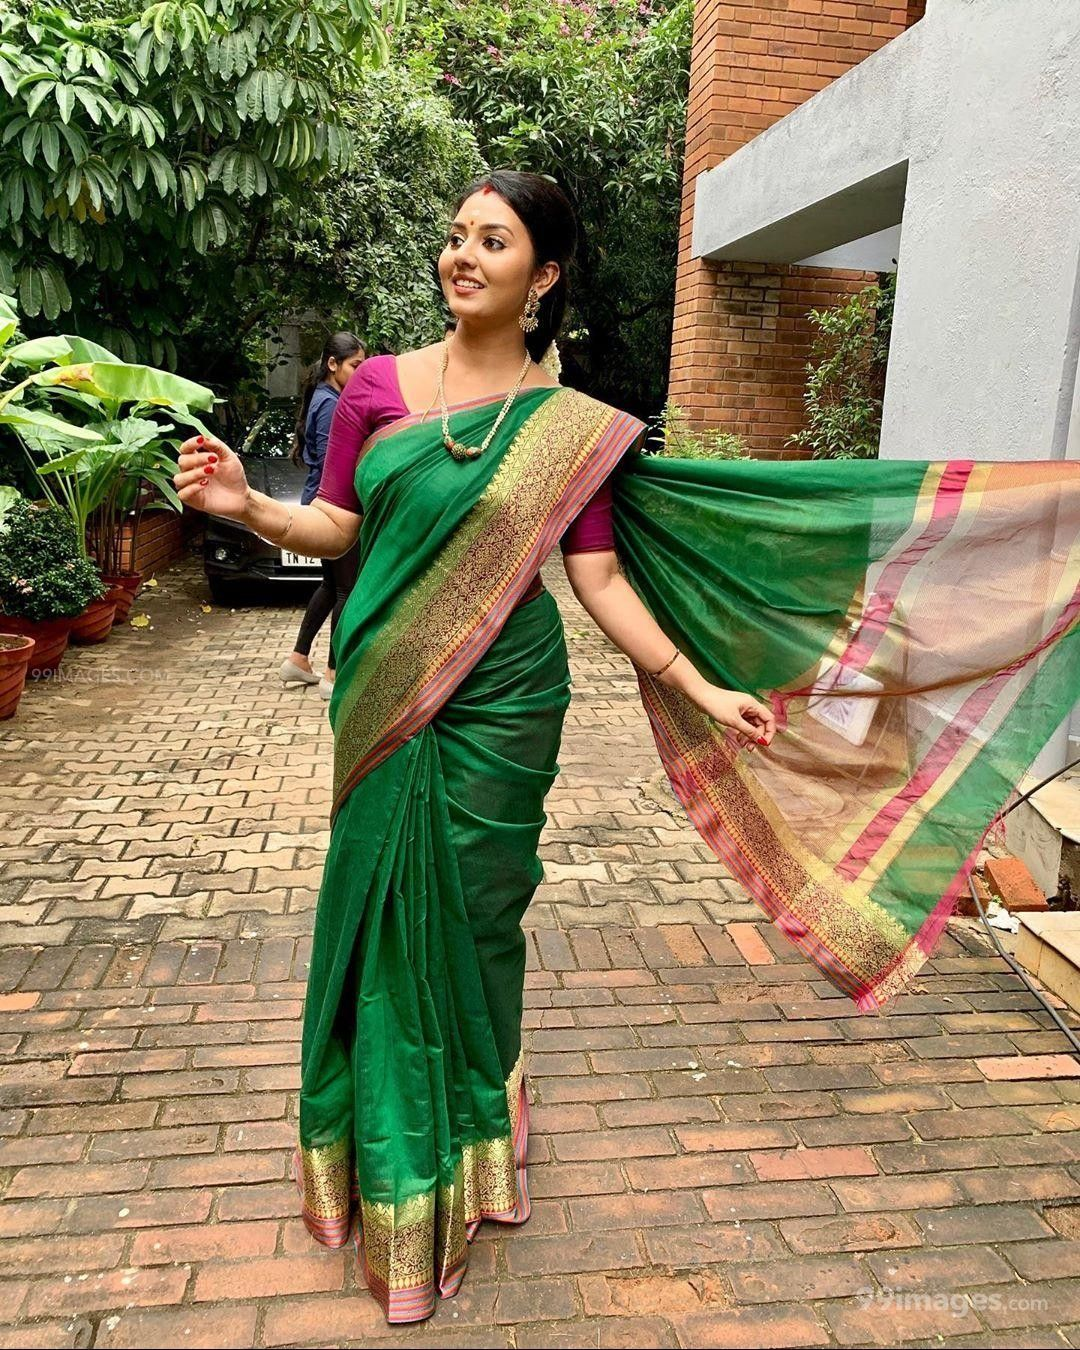 Vidhya Beautiful HD Photos & Mobile Wallpapers HD (Android/iPhone) (1080p) (193573) - Vidhya